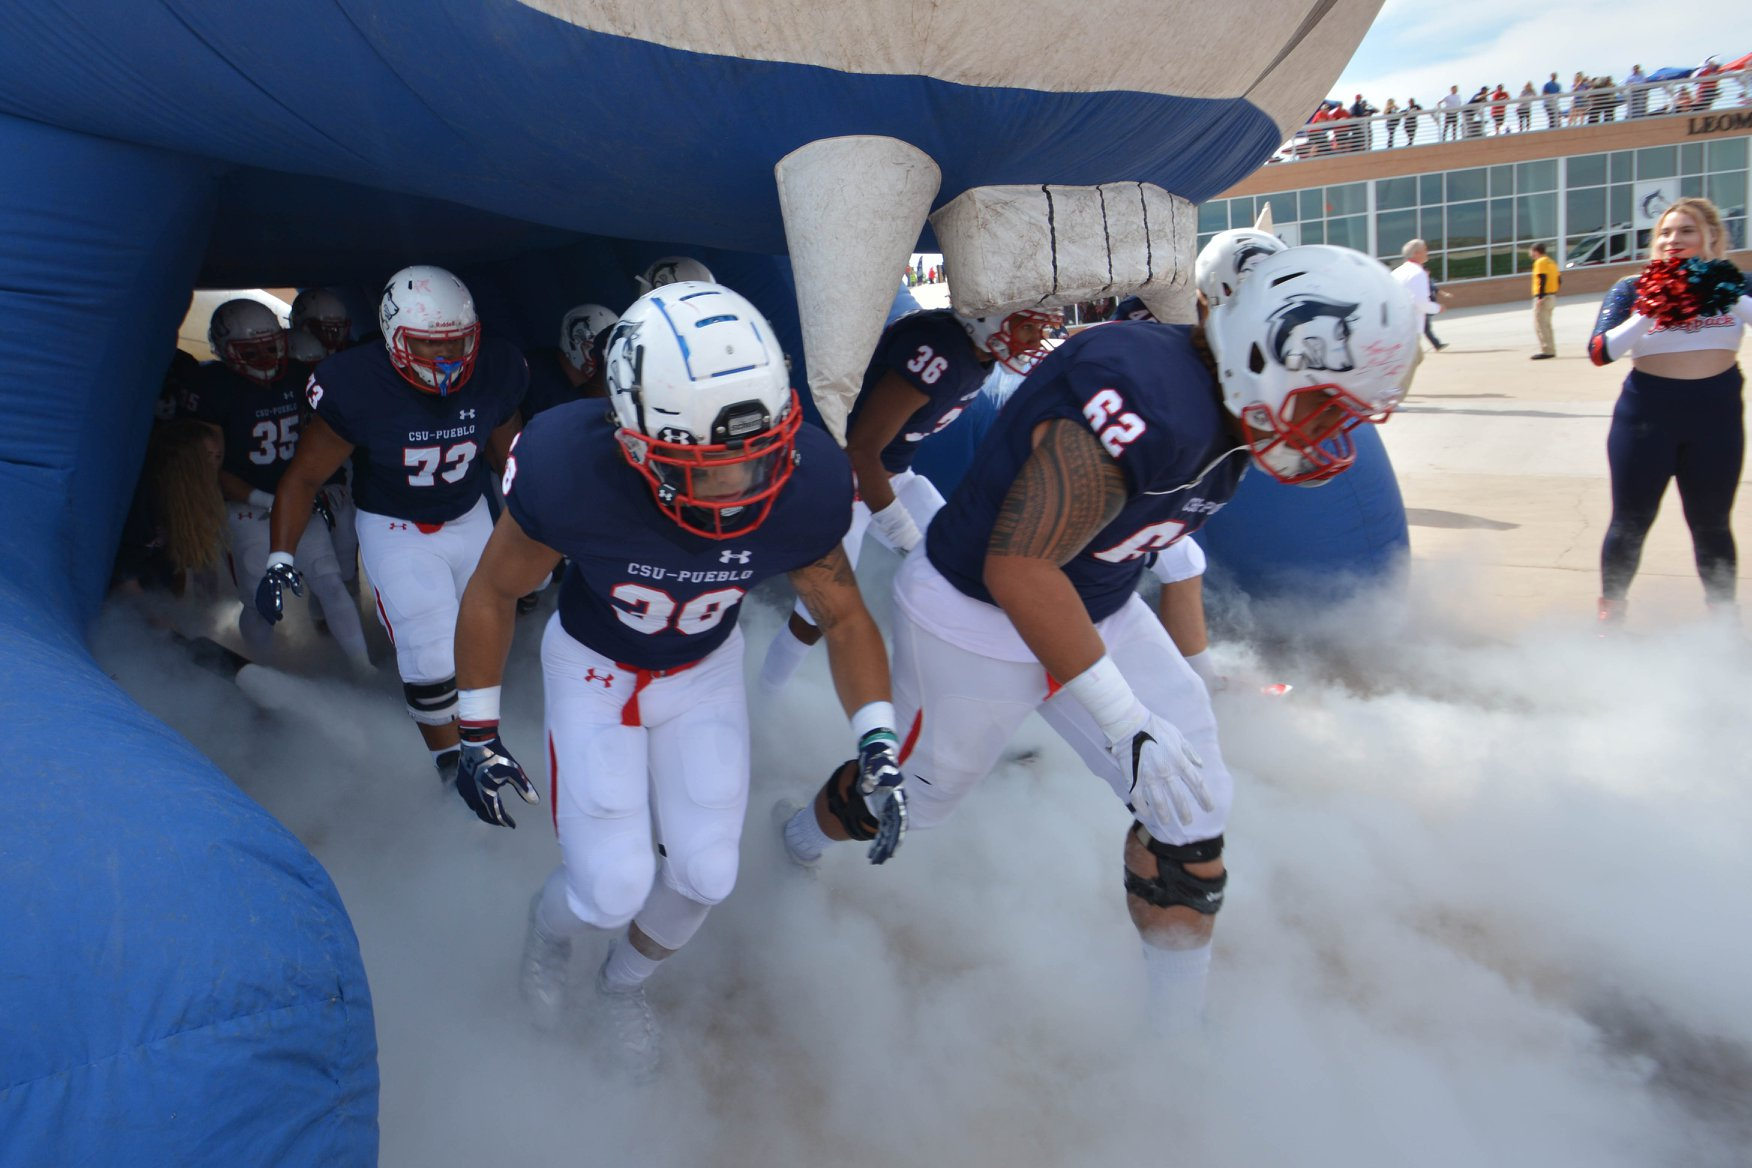 Homecoming football tunnel. Photo by Jason Prescott (A17)